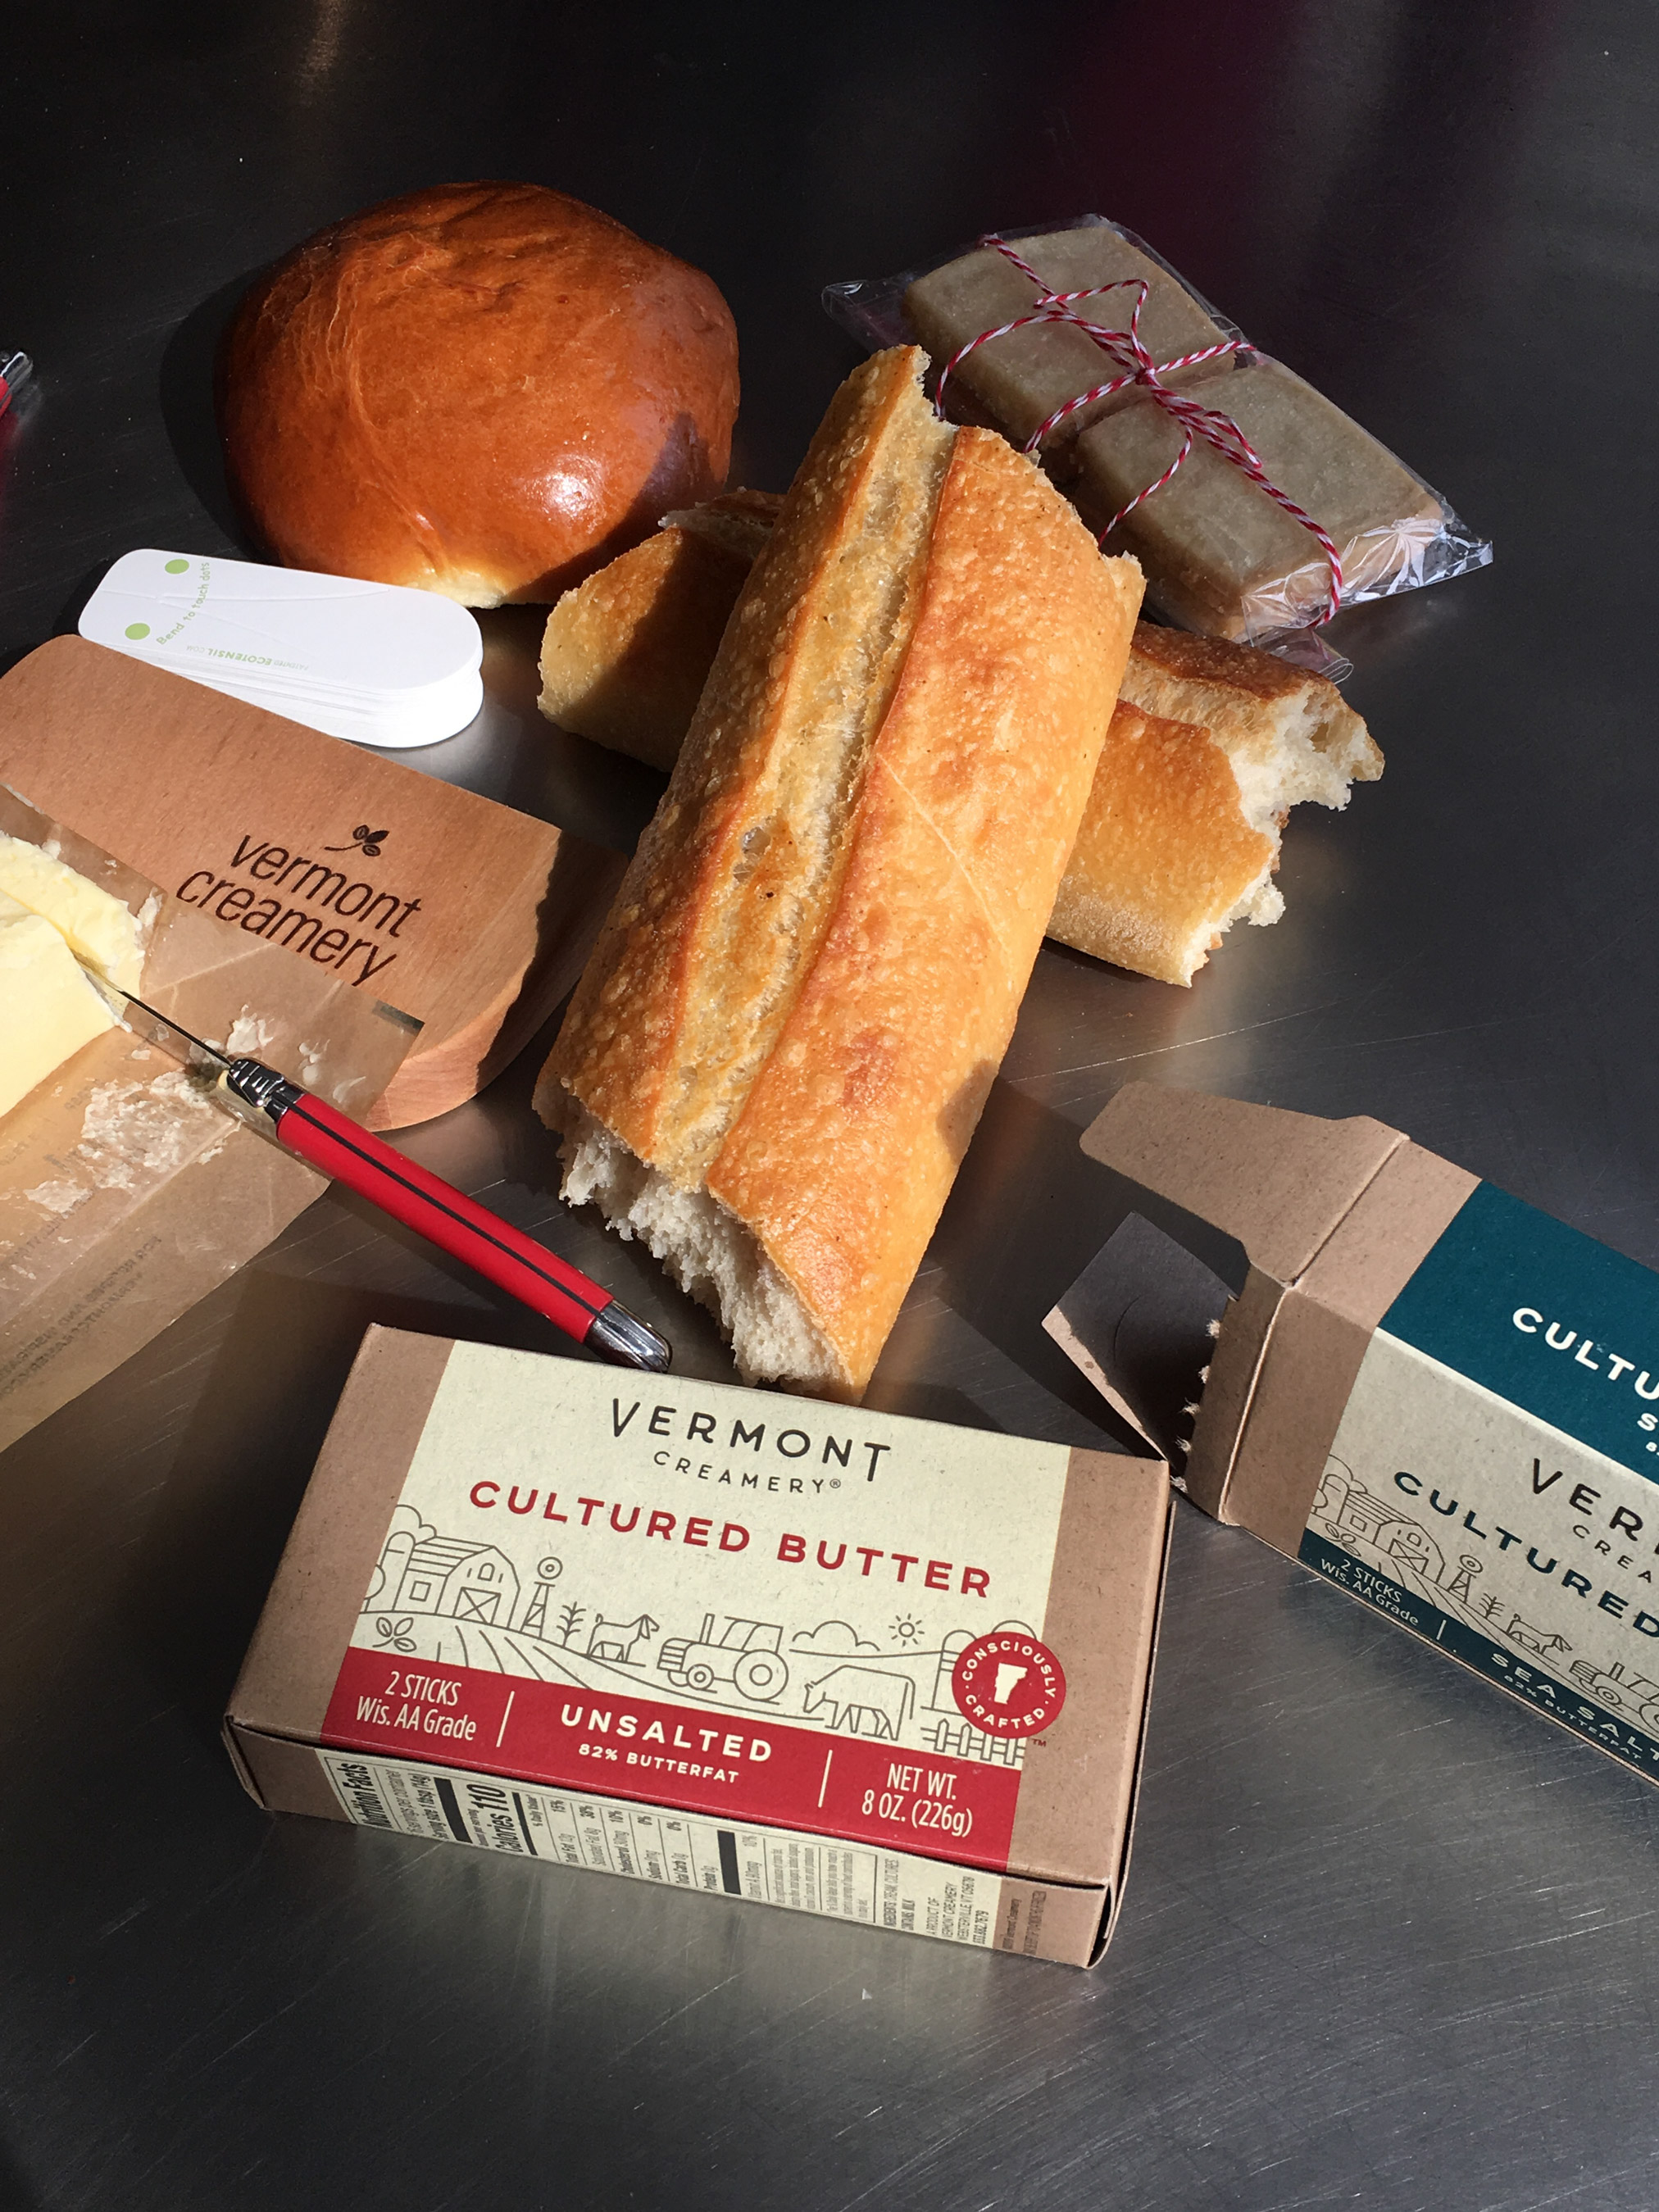 vermont creamery butter and breads